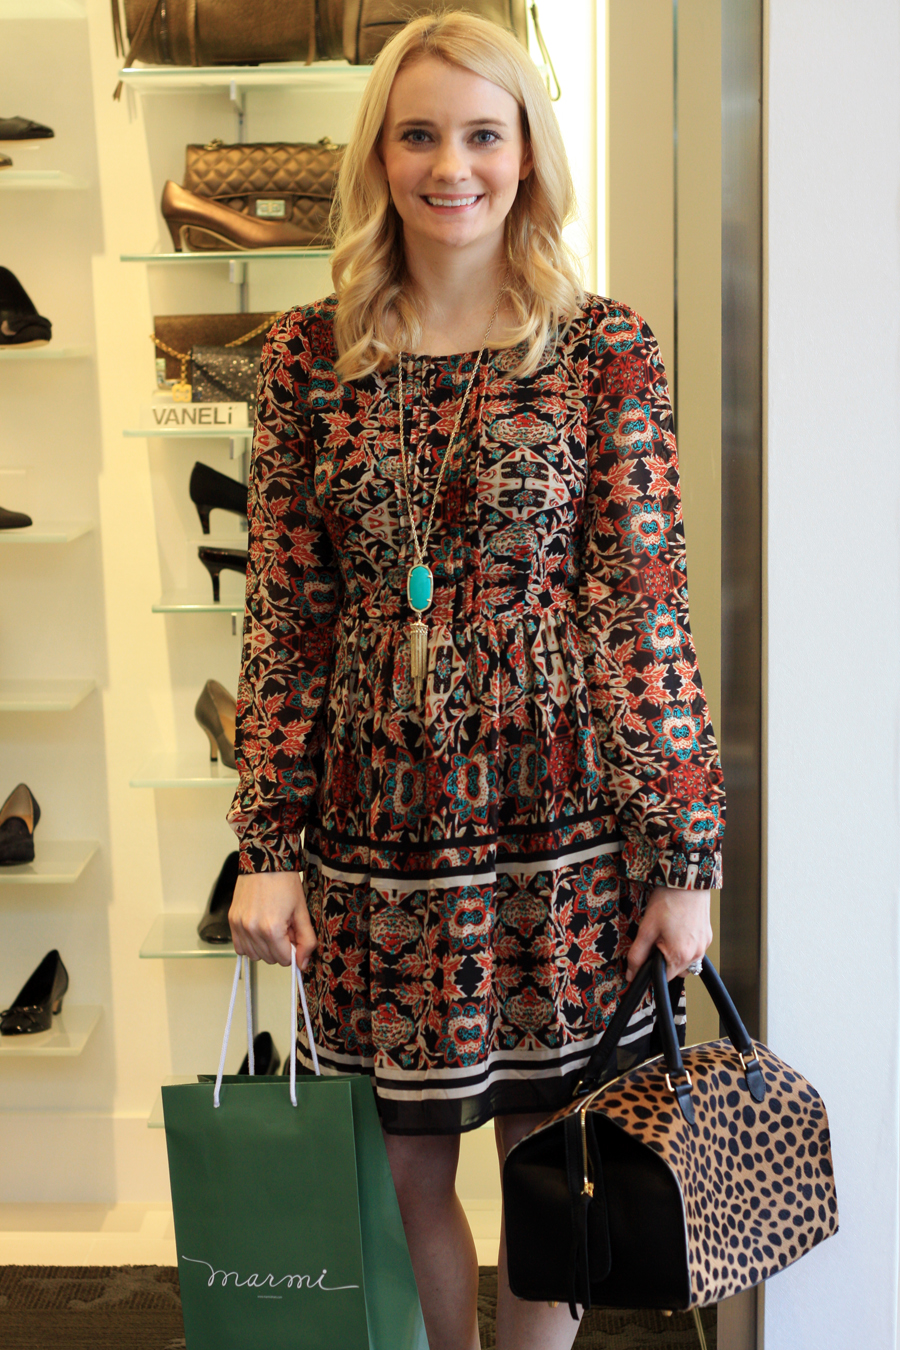 Marmi-Shoes-Saddle-Creek-Memphis-4